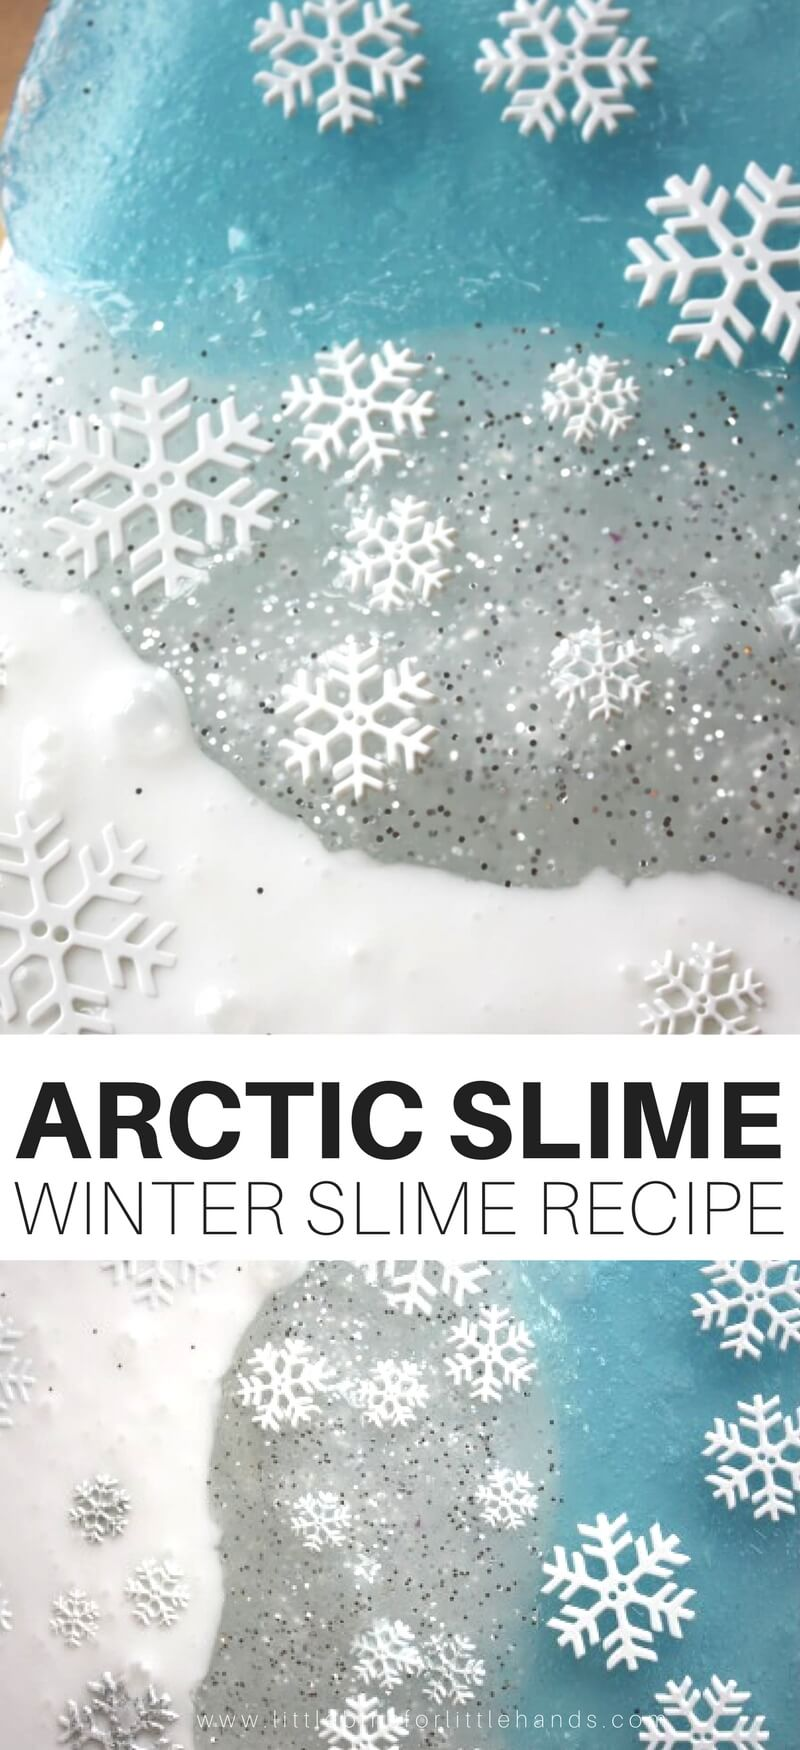 Make sure your penguins and polar bears don't meet up on this wintery expedition. Penguins prefer the South Pole and polar bears prefer the North Pole! Learn about the arctic and play with awesome homemade slime. Our arctic slime recipe is perfect for winter science and sensory play. Best part is you don't have to live in the arctic to enjoy this slime recipe.